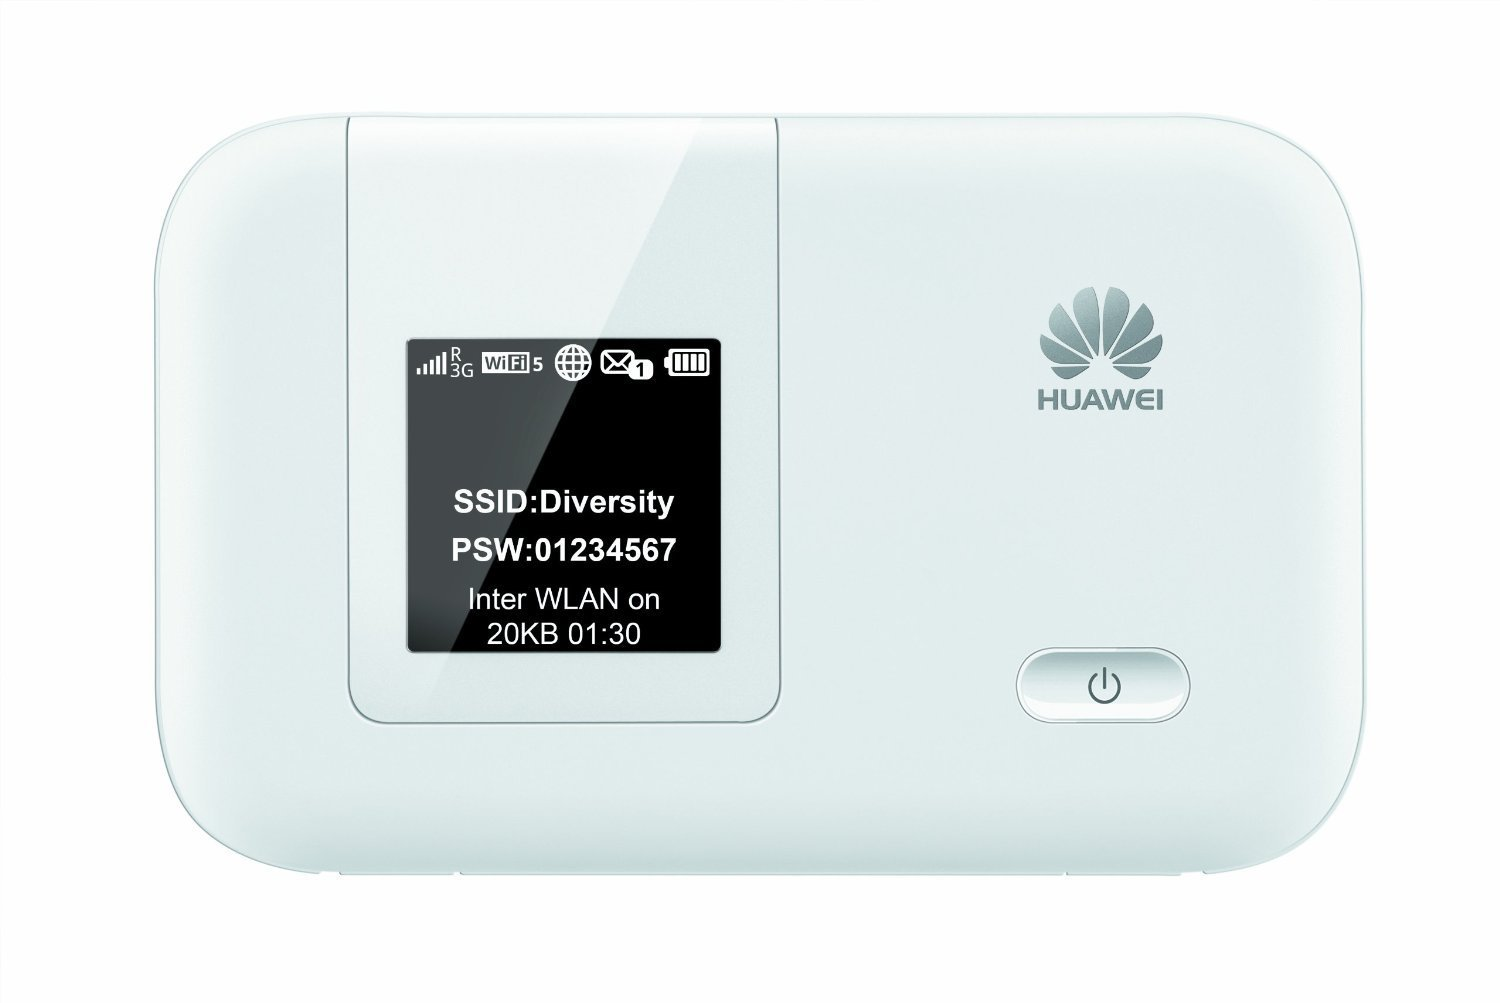 Unlocked HUAWEI E5372s-32 150 Mbps 4G LTE & 42 Mbps 3G Mobile WiFi Hotspot unlock huawei e5372s-32 4g lte mobile wifi router (3G Worldwide, 4G LTE in Europe, Asia, Middle East, Africa)